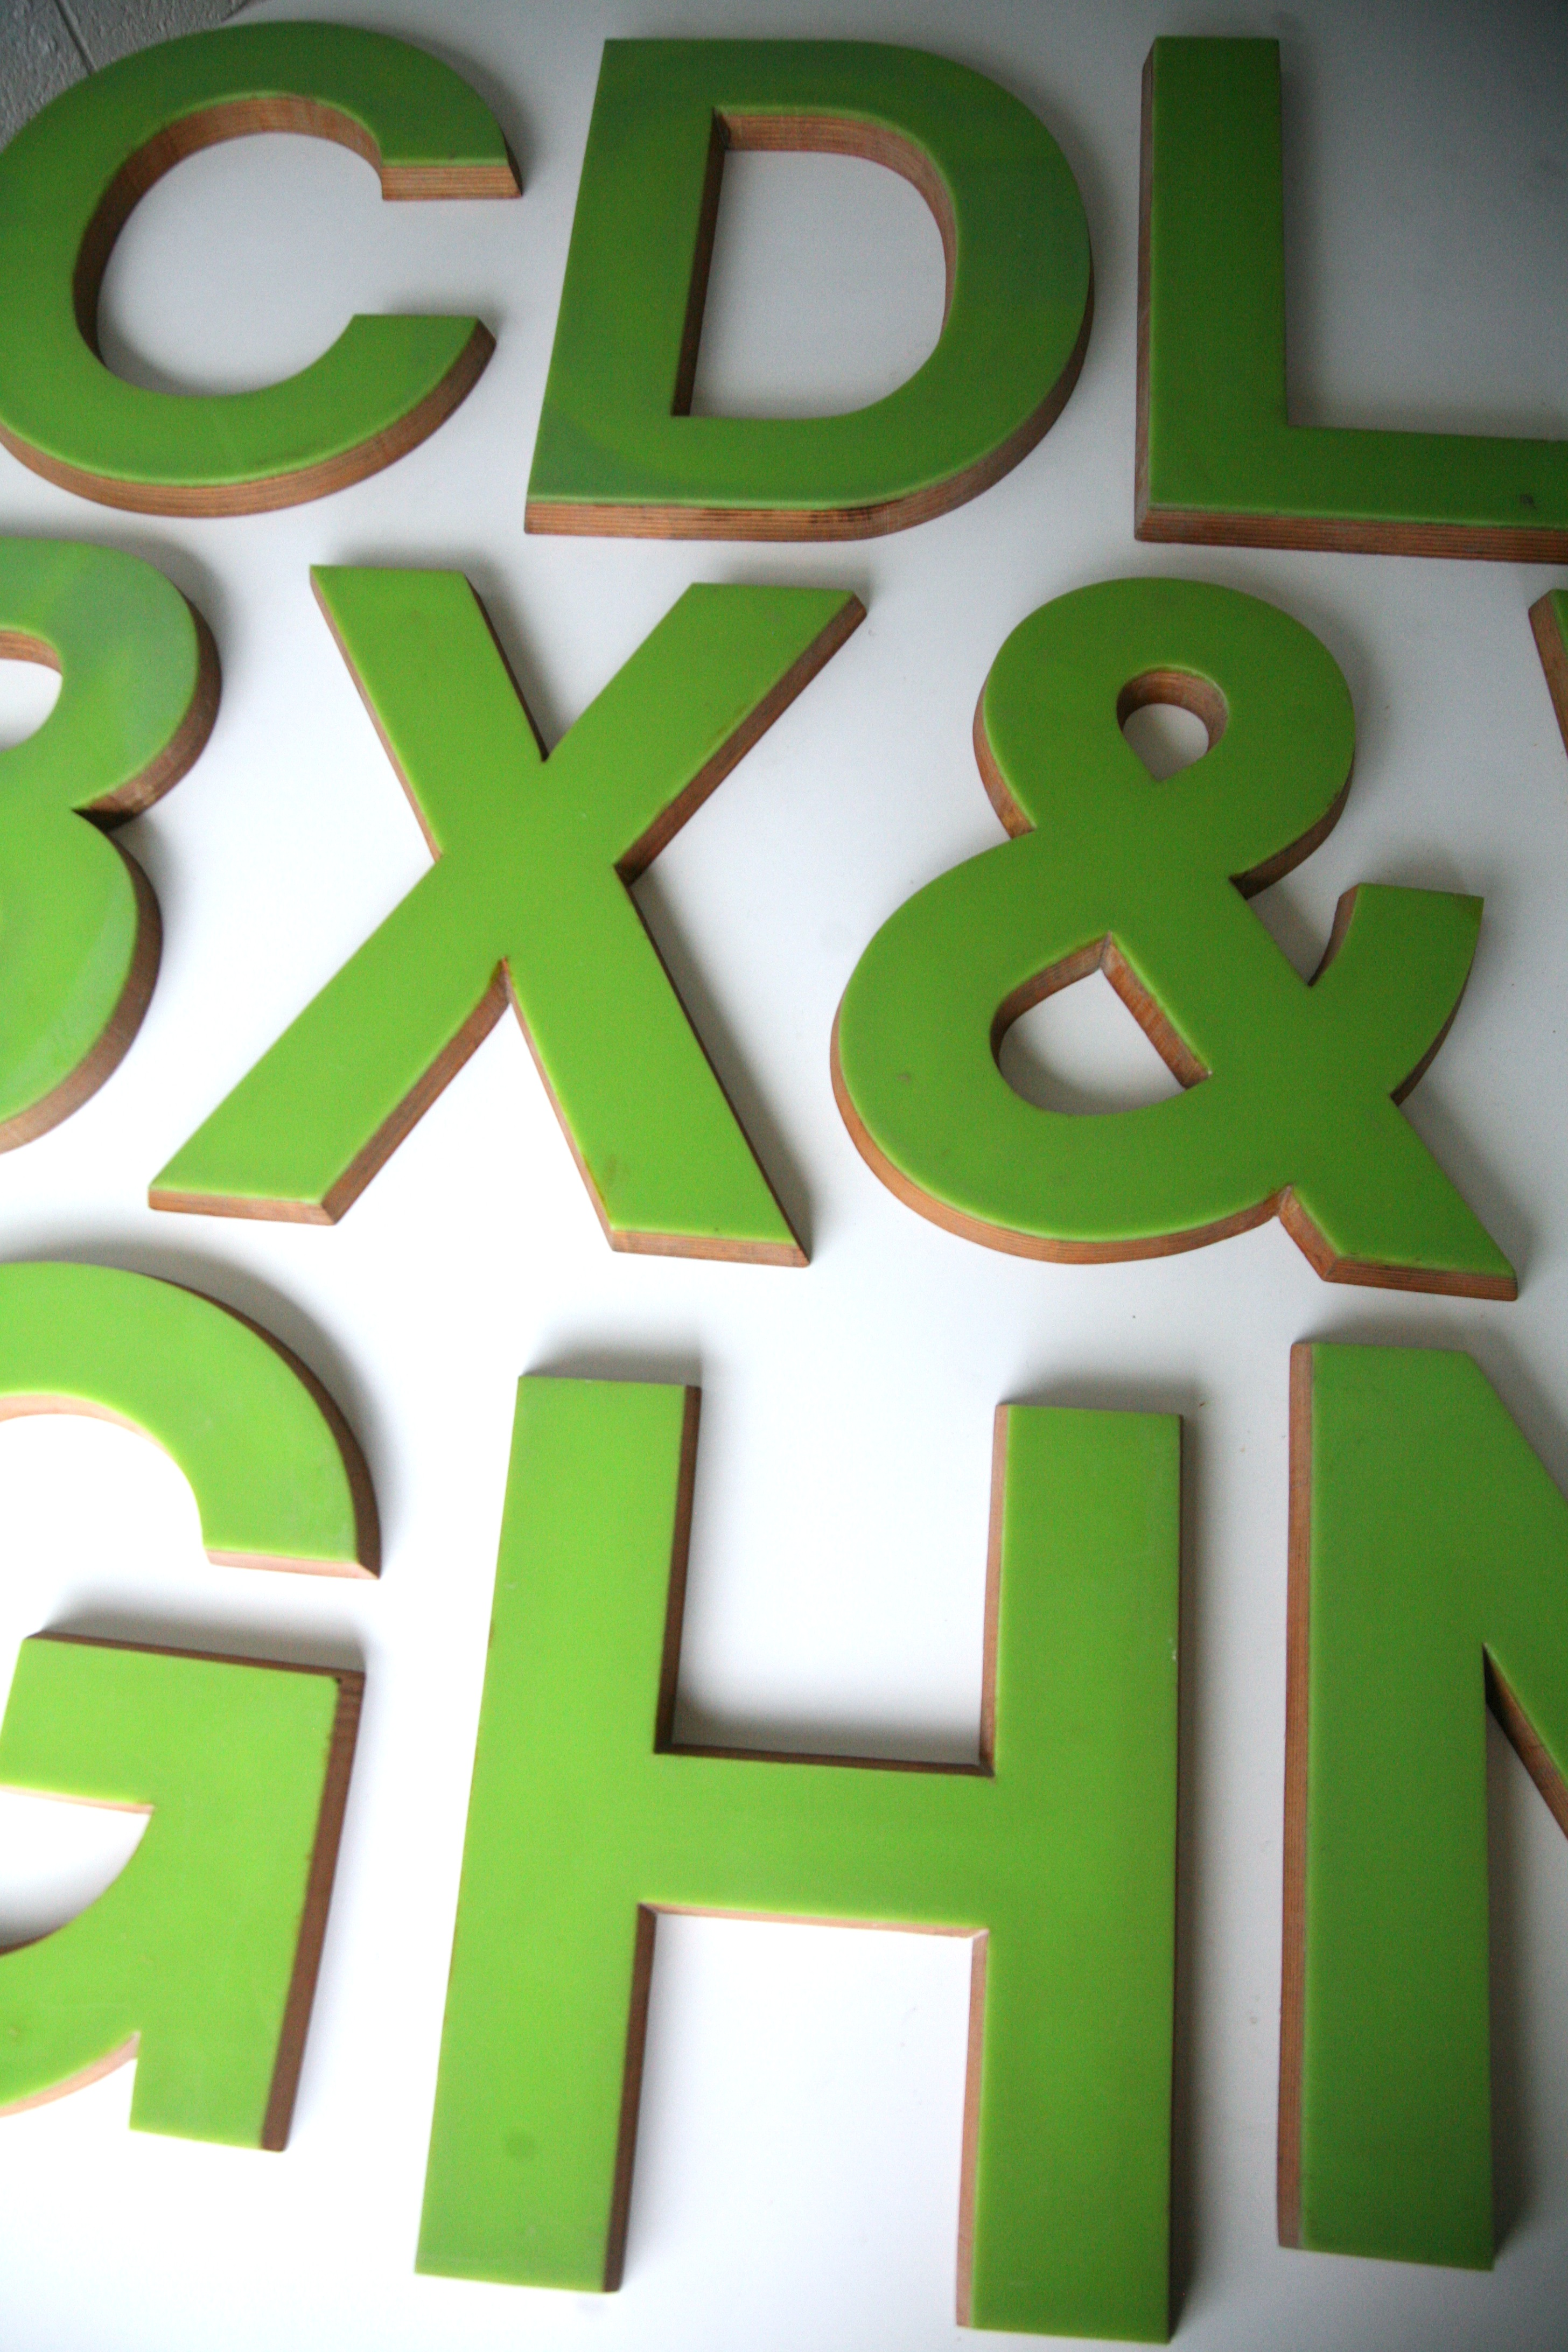 Large Plastic Alphabet Letters Large Green Plastic And Wood Shop Letters Cream And Chrome